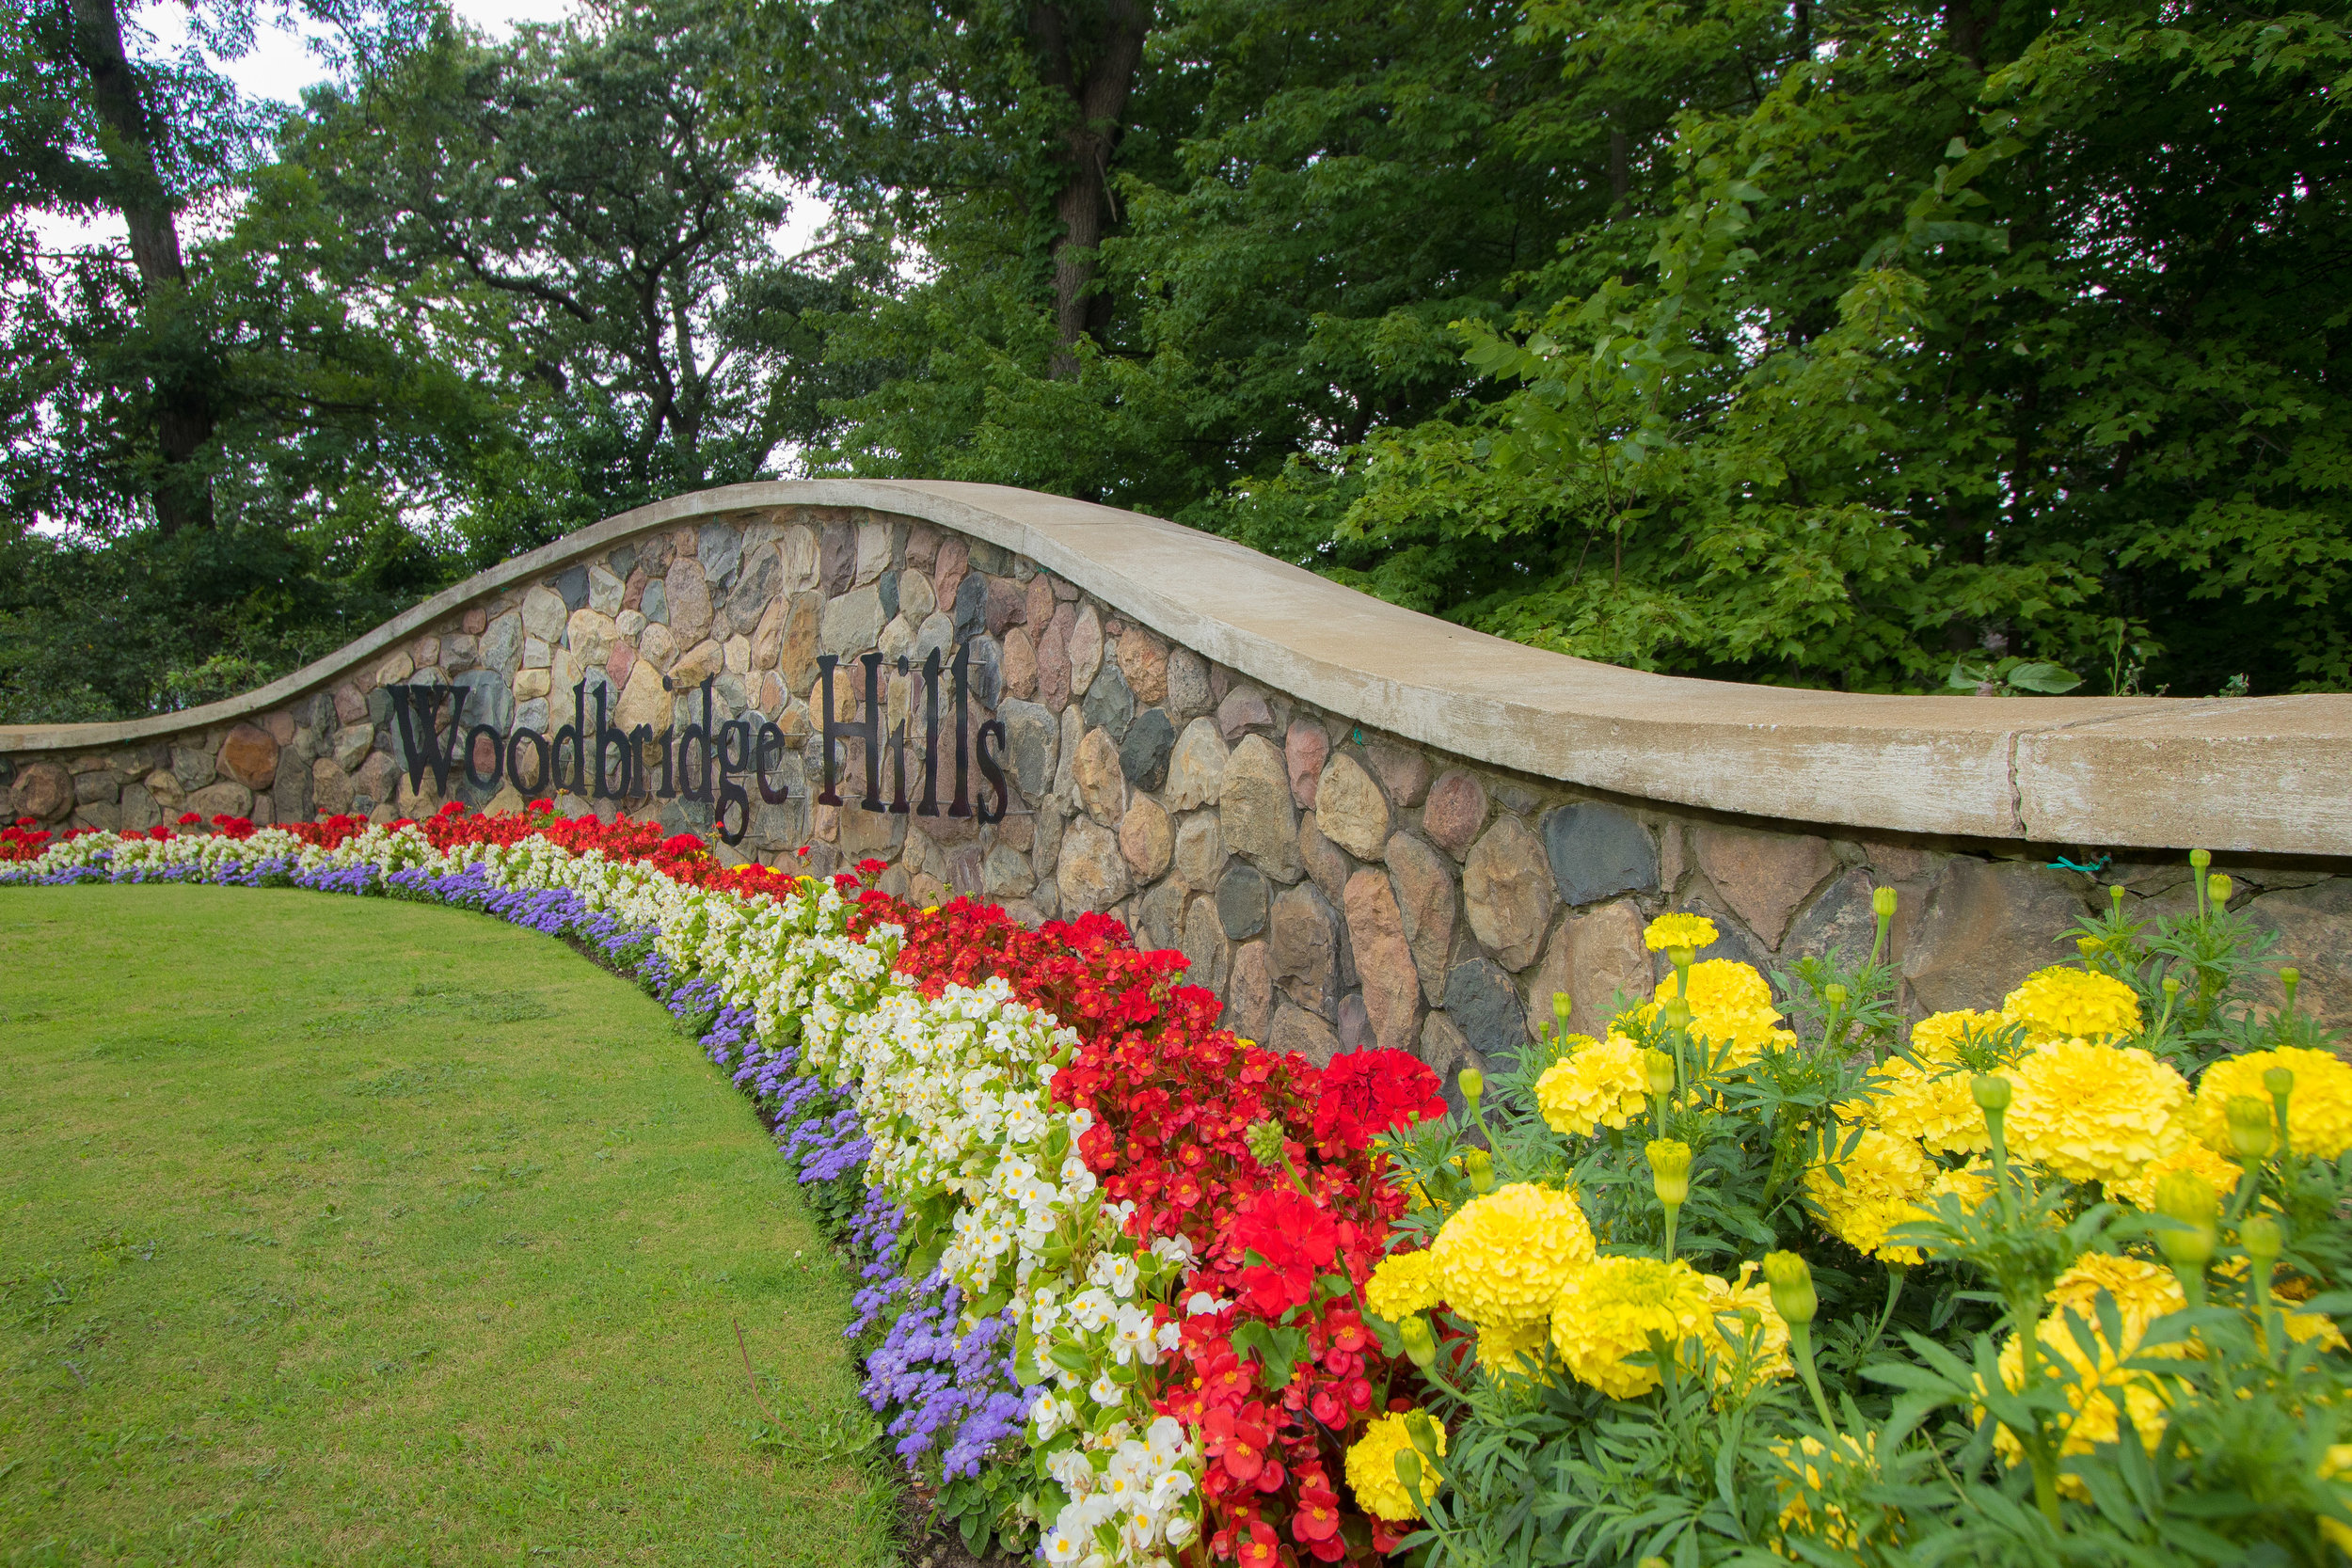 Woodbridge Hills, one of AVB's 1st development projects, opened in 1979.